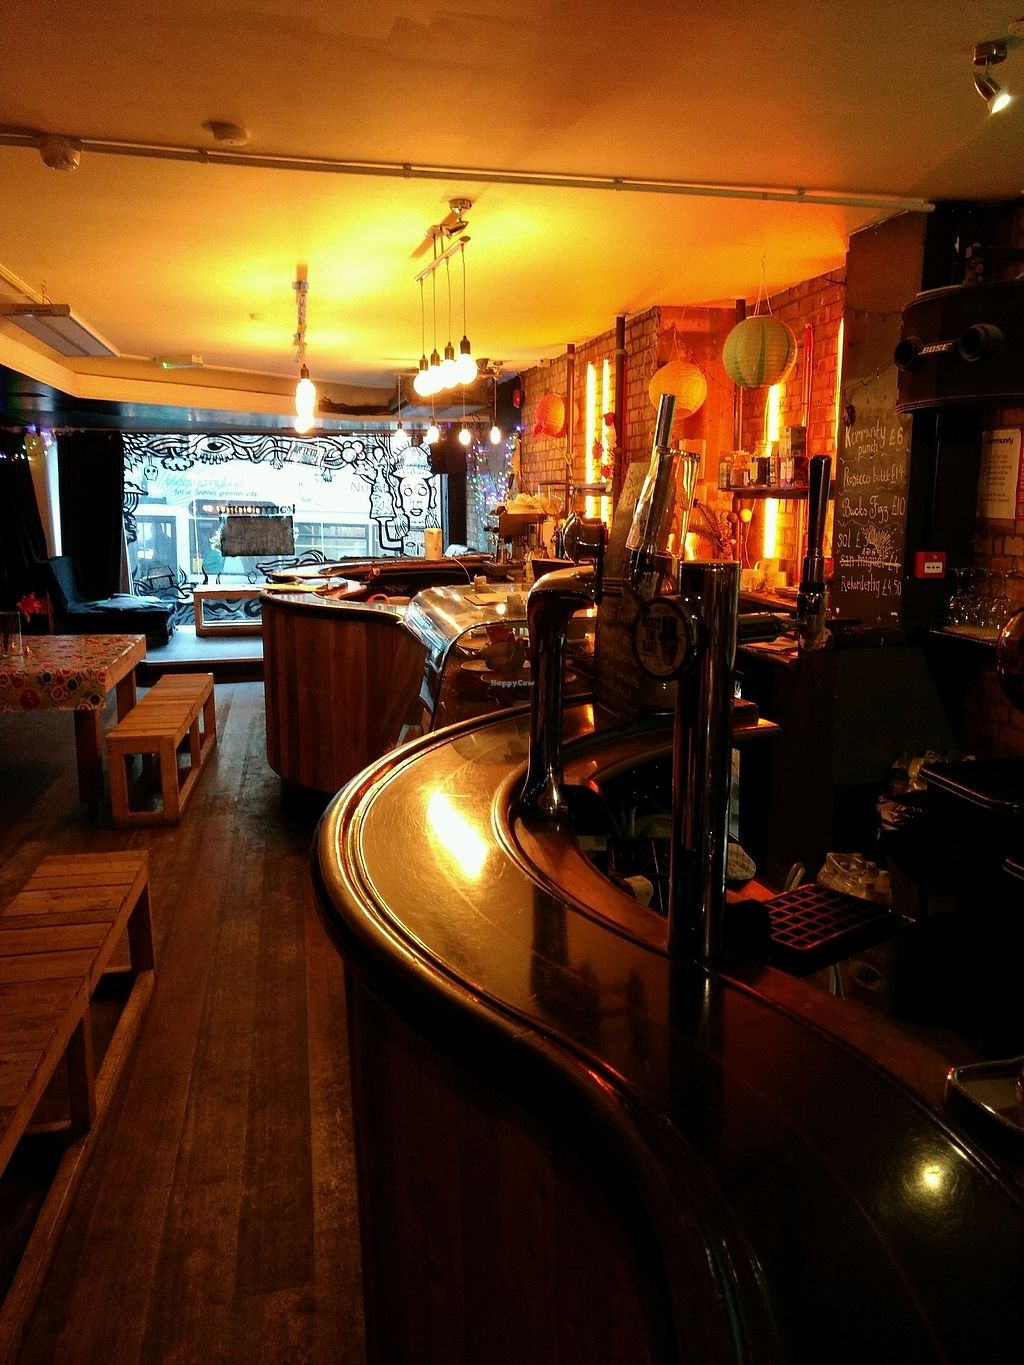 """Photo of Wildflower Creative Kitchen  by <a href=""""/members/profile/craigmc"""">craigmc</a> <br/>great space <br/> January 12, 2018  - <a href='/contact/abuse/image/82039/345874'>Report</a>"""